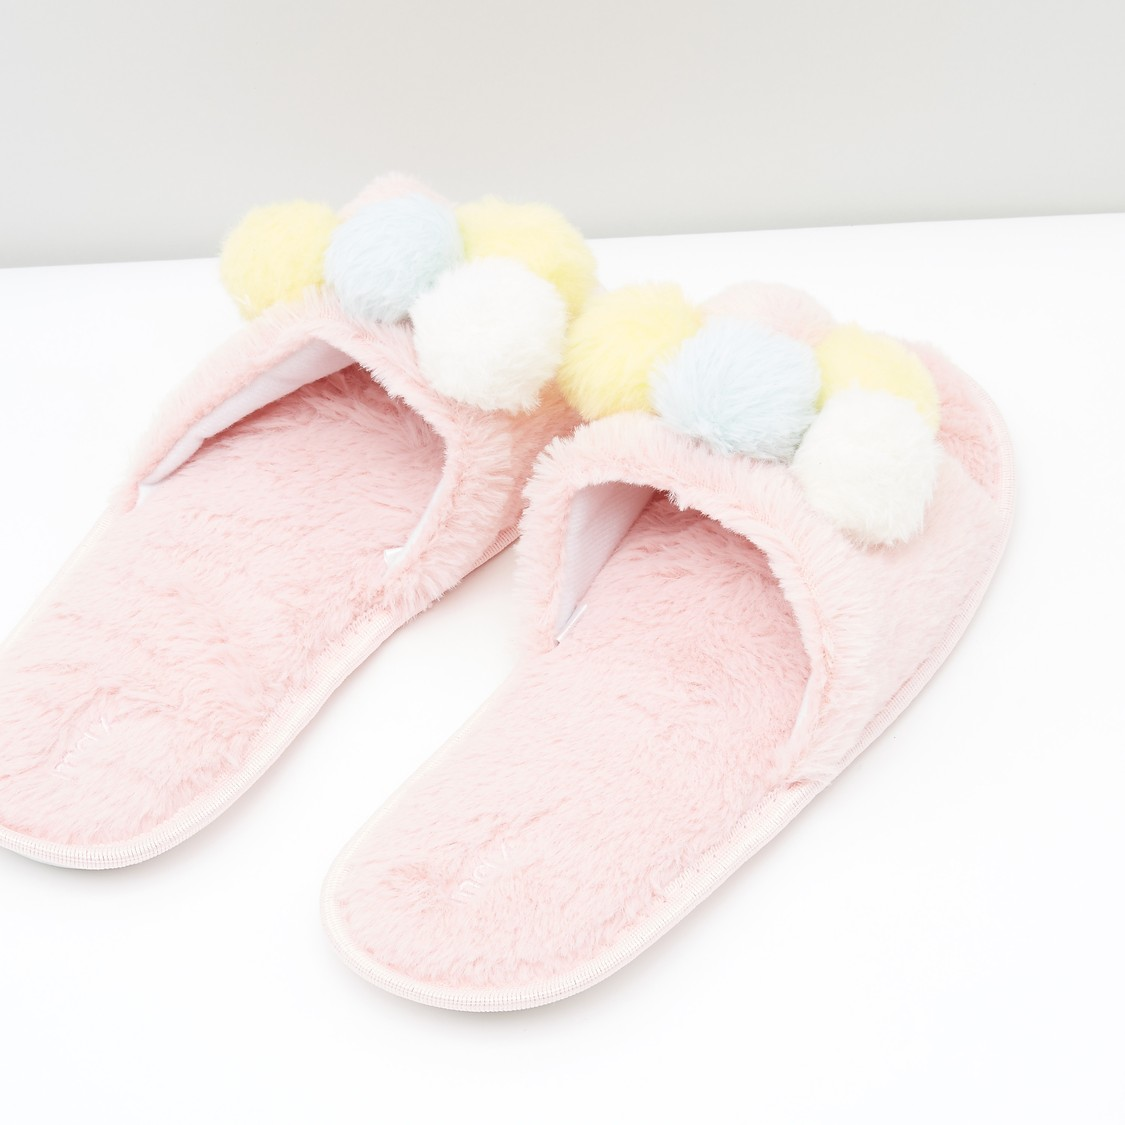 Bedroom Slippers with Pom Poms